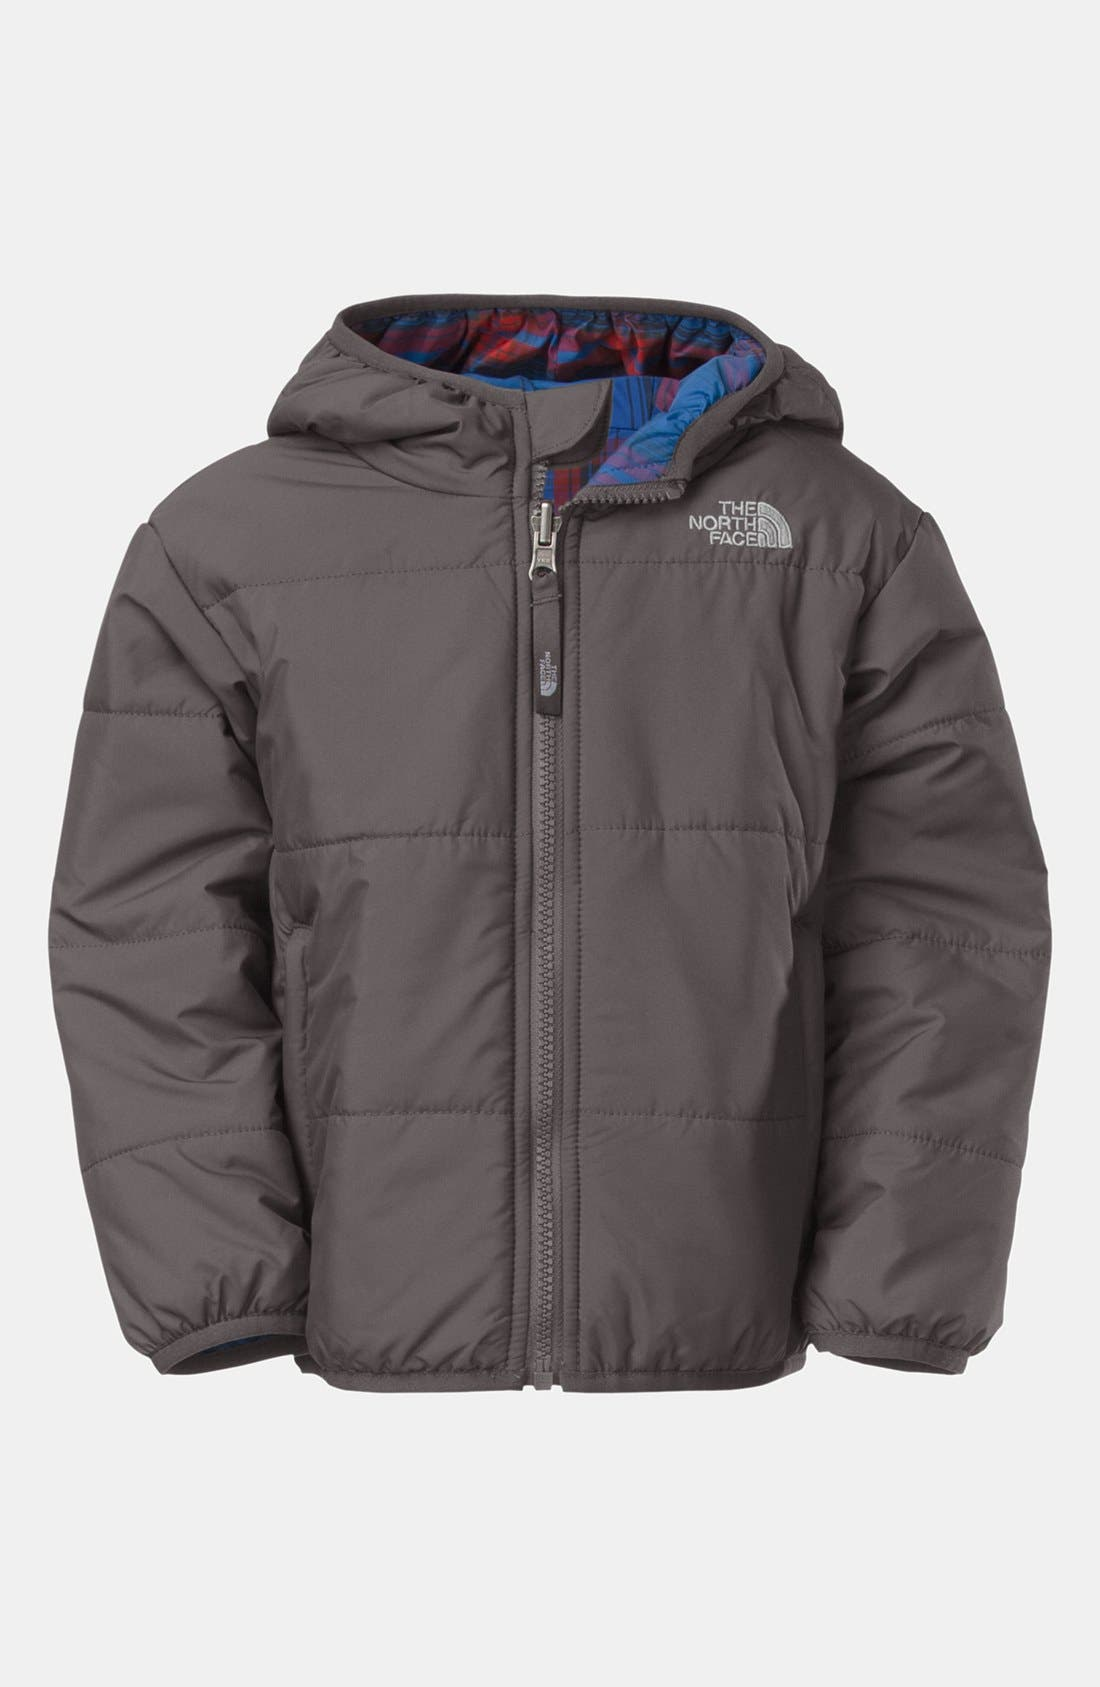 Alternate Image 1 Selected - The North Face 'Perrito' Reversible Jacket (Toddlers)